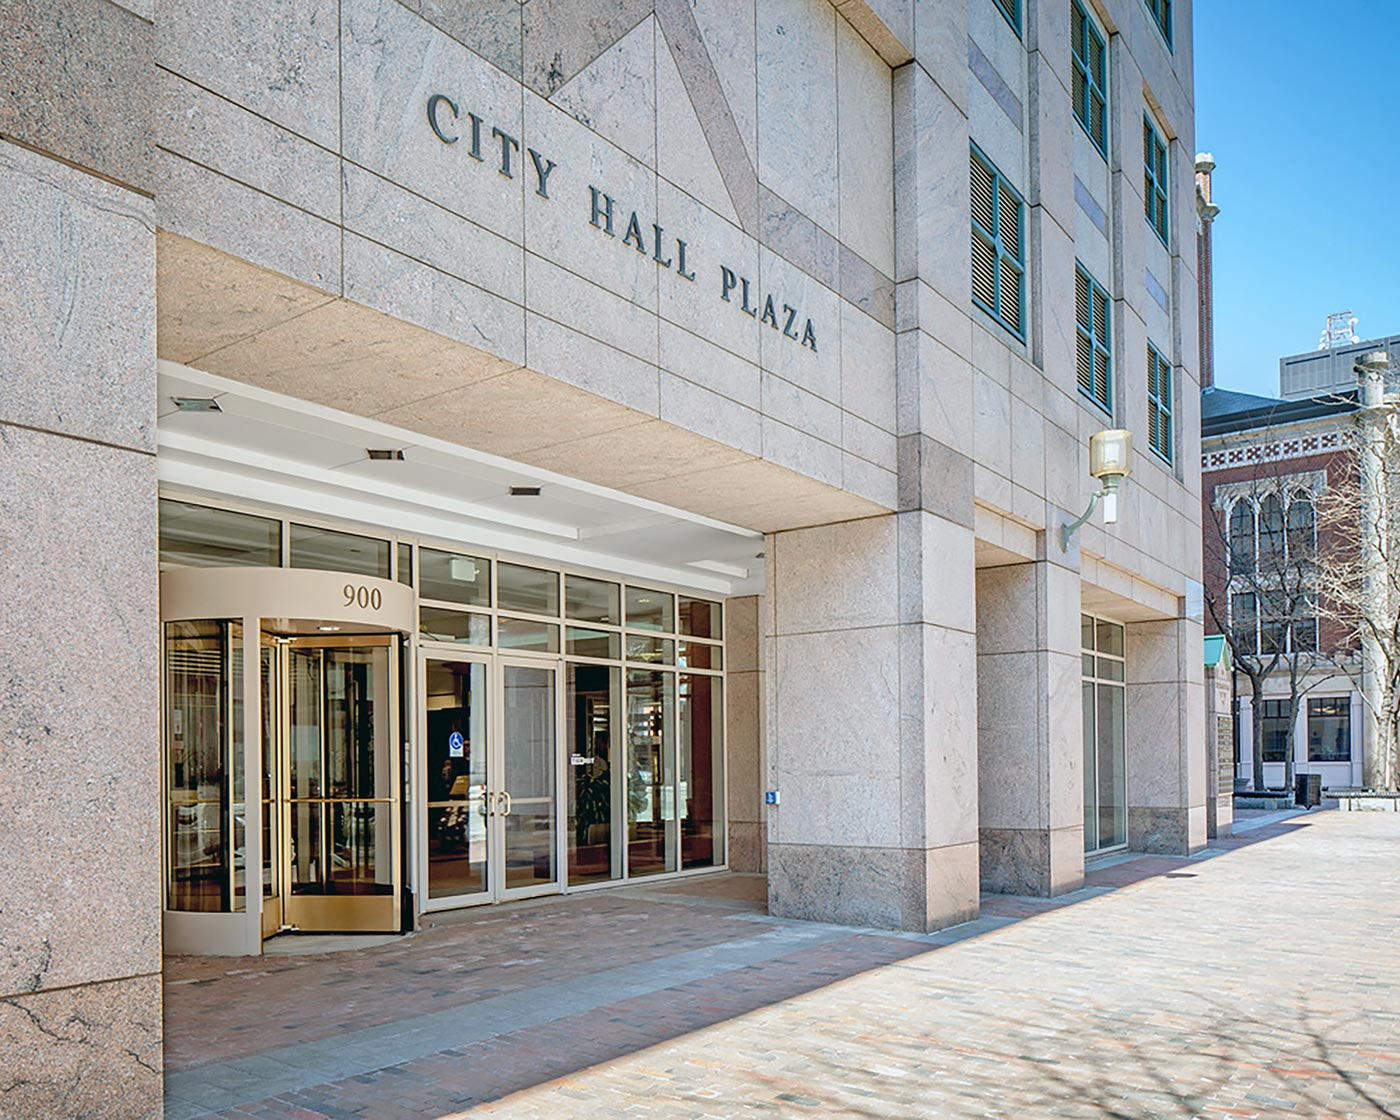 City Hall Plaza Manchester Nh Brady Sullivan Properties